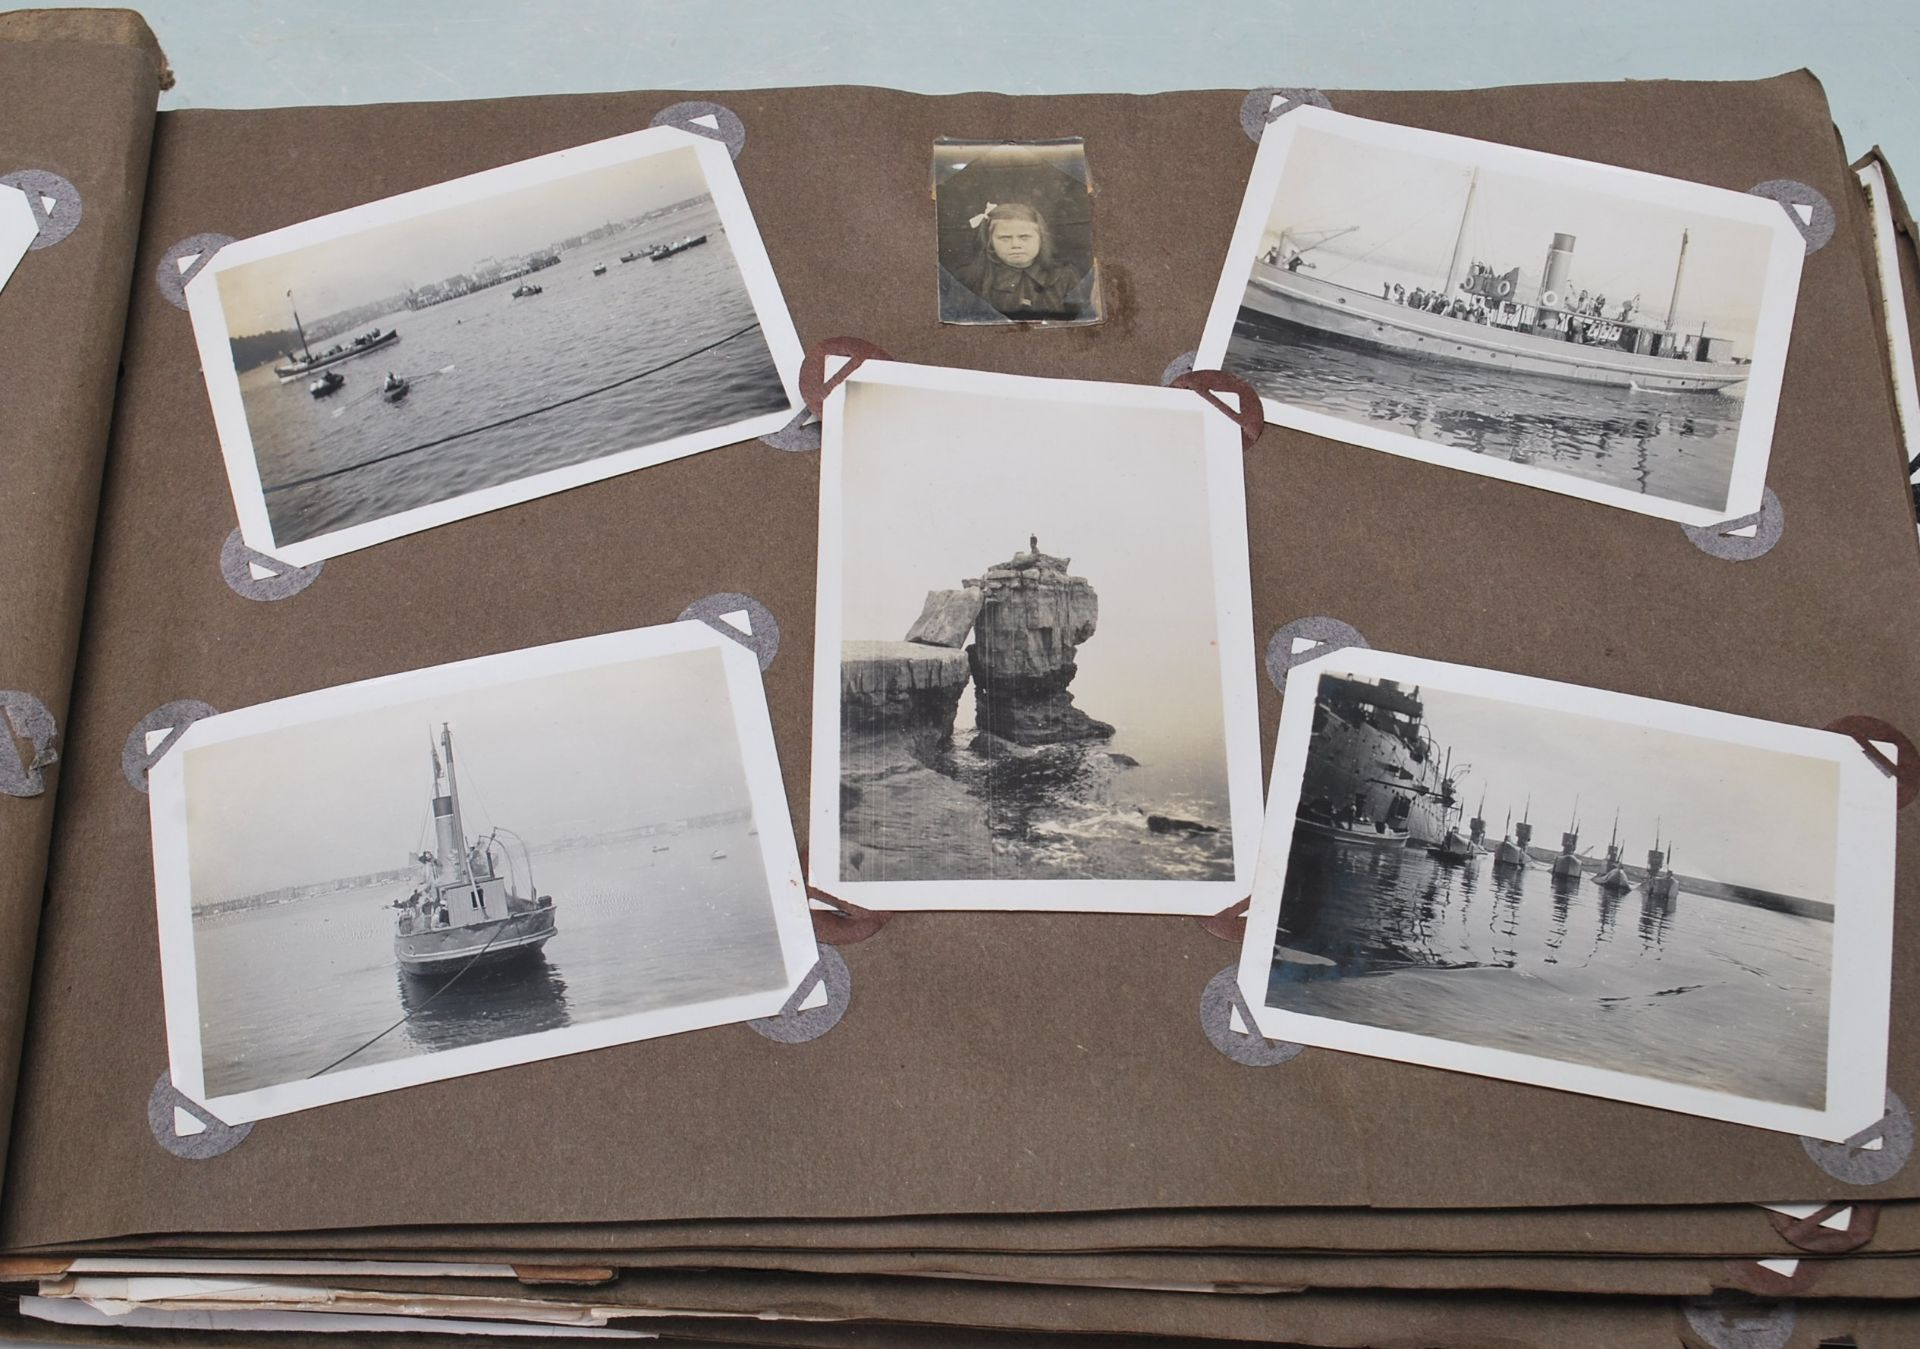 EARLY 20TH CENTURY BLACK AND WHITE PHOTO ALBUM - Image 2 of 14